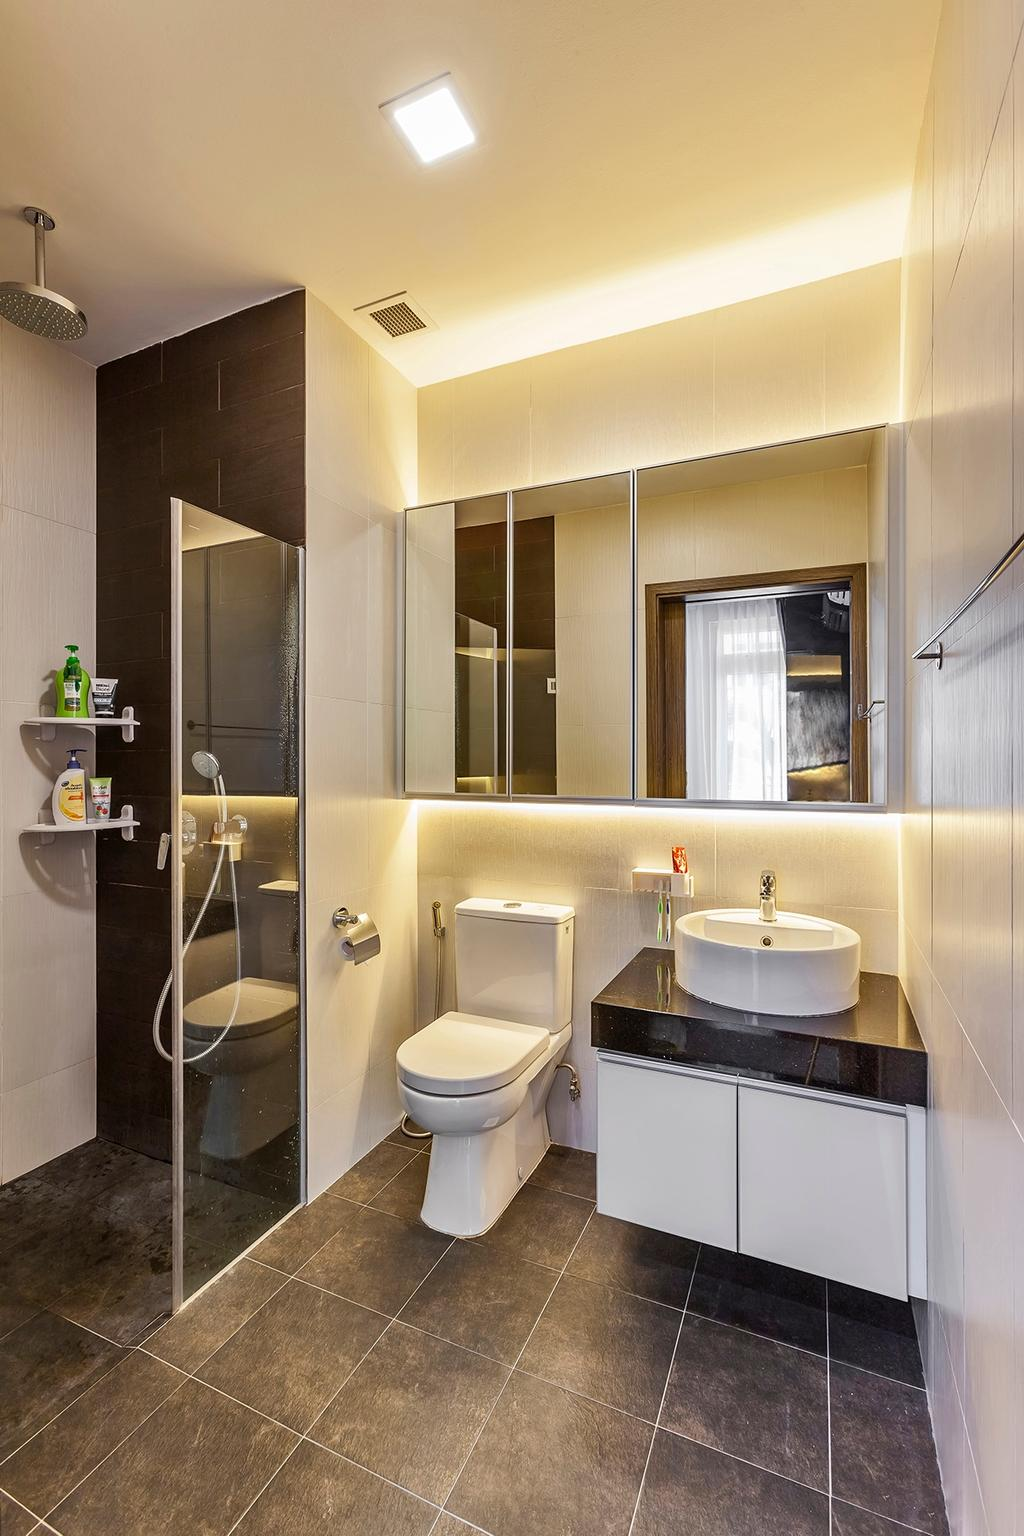 Bathroom Interior Design Singapore Interior Design Ideas